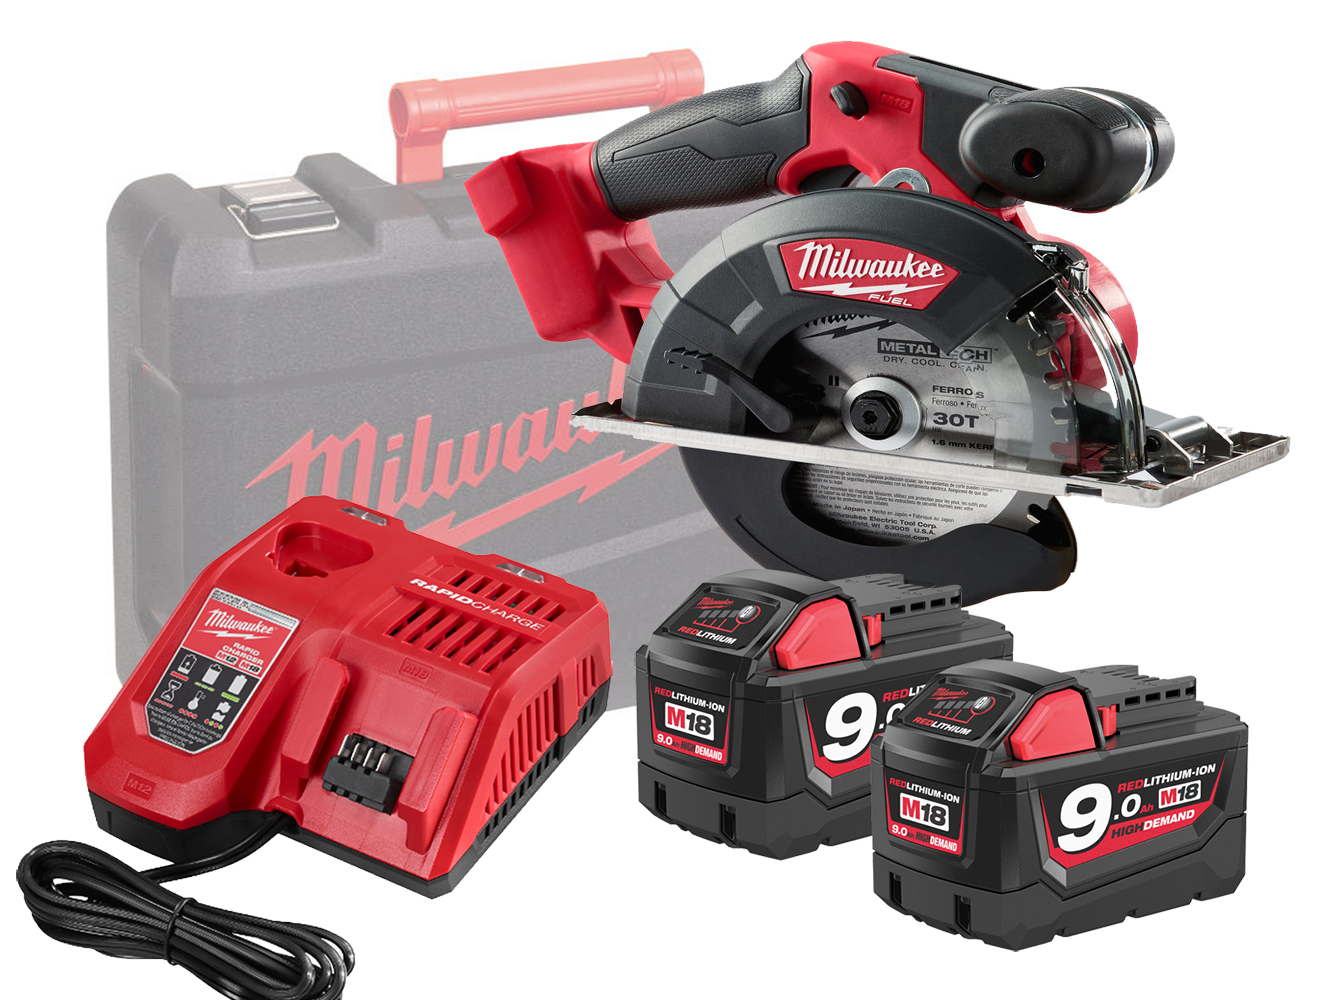 Milwaukee M18FMCS 18V FUEL 150mm (57mm) Metal Circular Saw - 9.0ah Pack